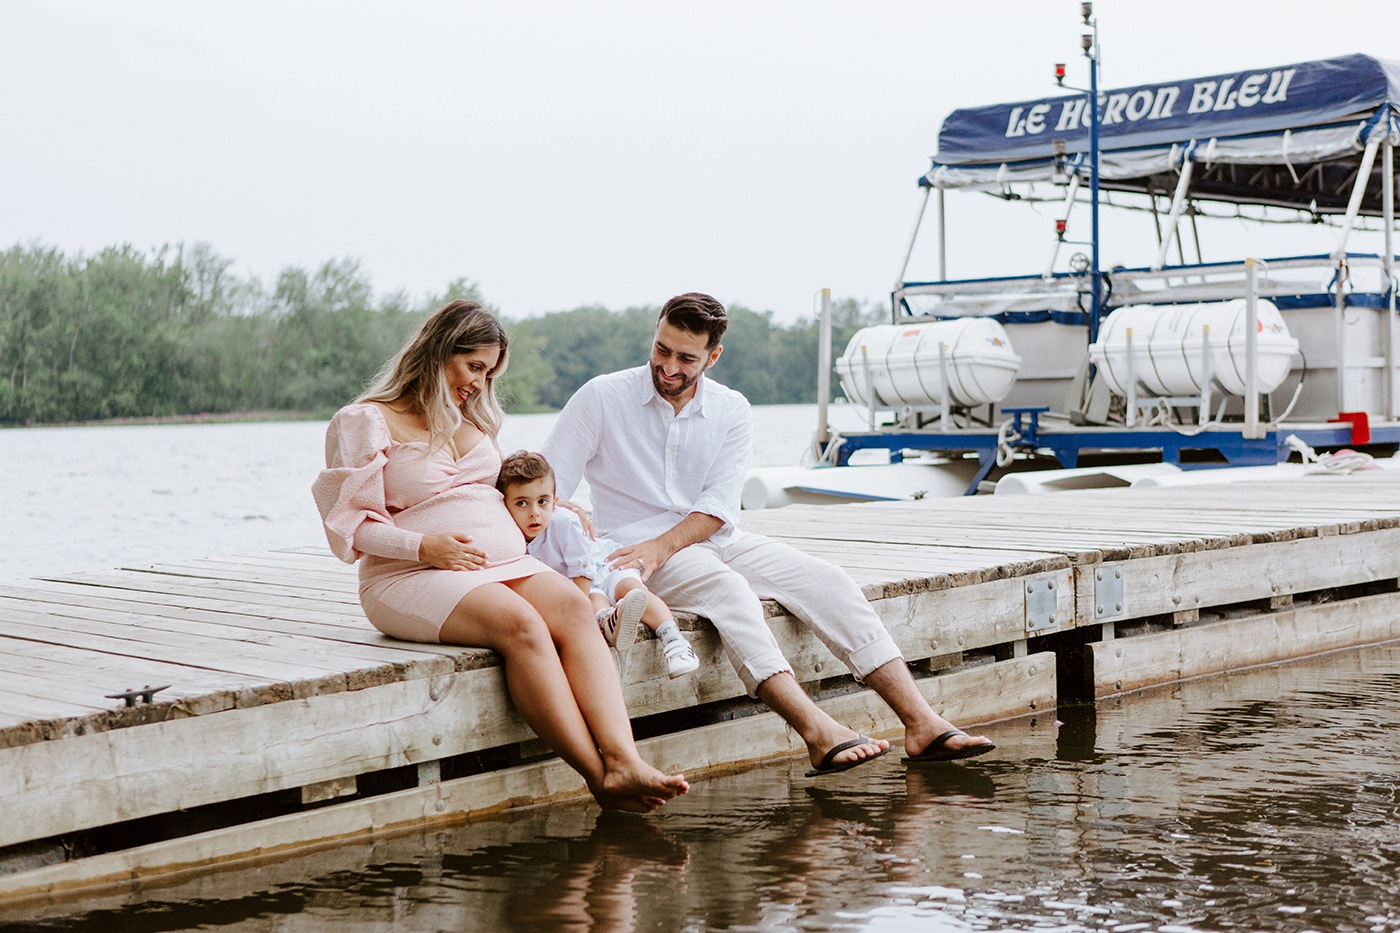 Maternity photos next to river. Maternity session by waterfront. Maternity photos with toddler. Maternity session little boy. Séance maternité à la Berge des Baigneurs à Laval. Photographe de maternité à Laval. Laval maternity photographer.